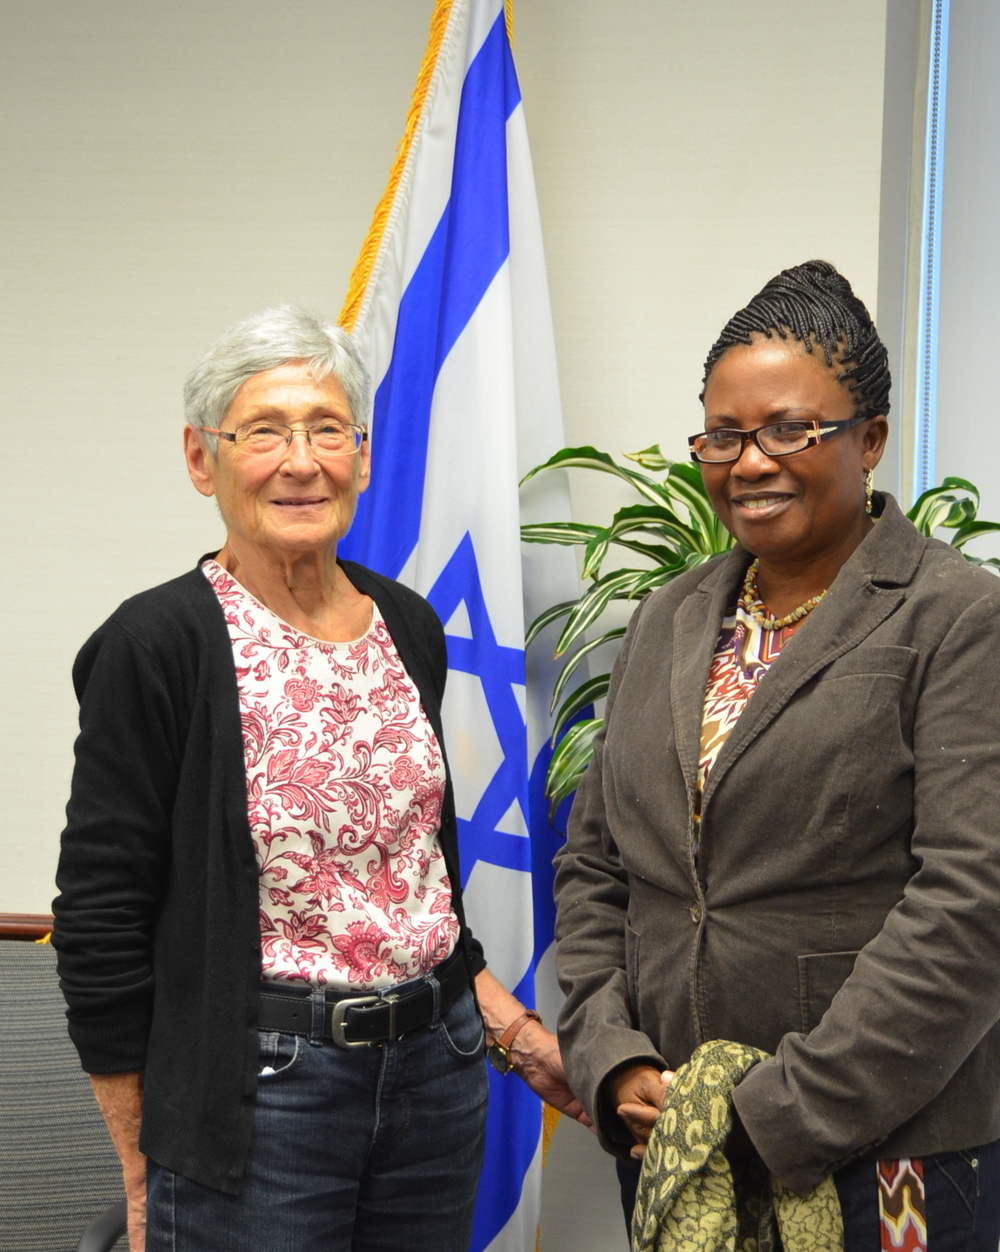 Click photo to download. Caption: Janette Hirshmann (left) and Gladys Amaning (right), of Israel and Ghana, respectively, have jointly developed a visionary program to provide this and future generations of Ghanaian preschoolers with the initial tools needed to achieve their full potential. Credit: Maxine Dovere.